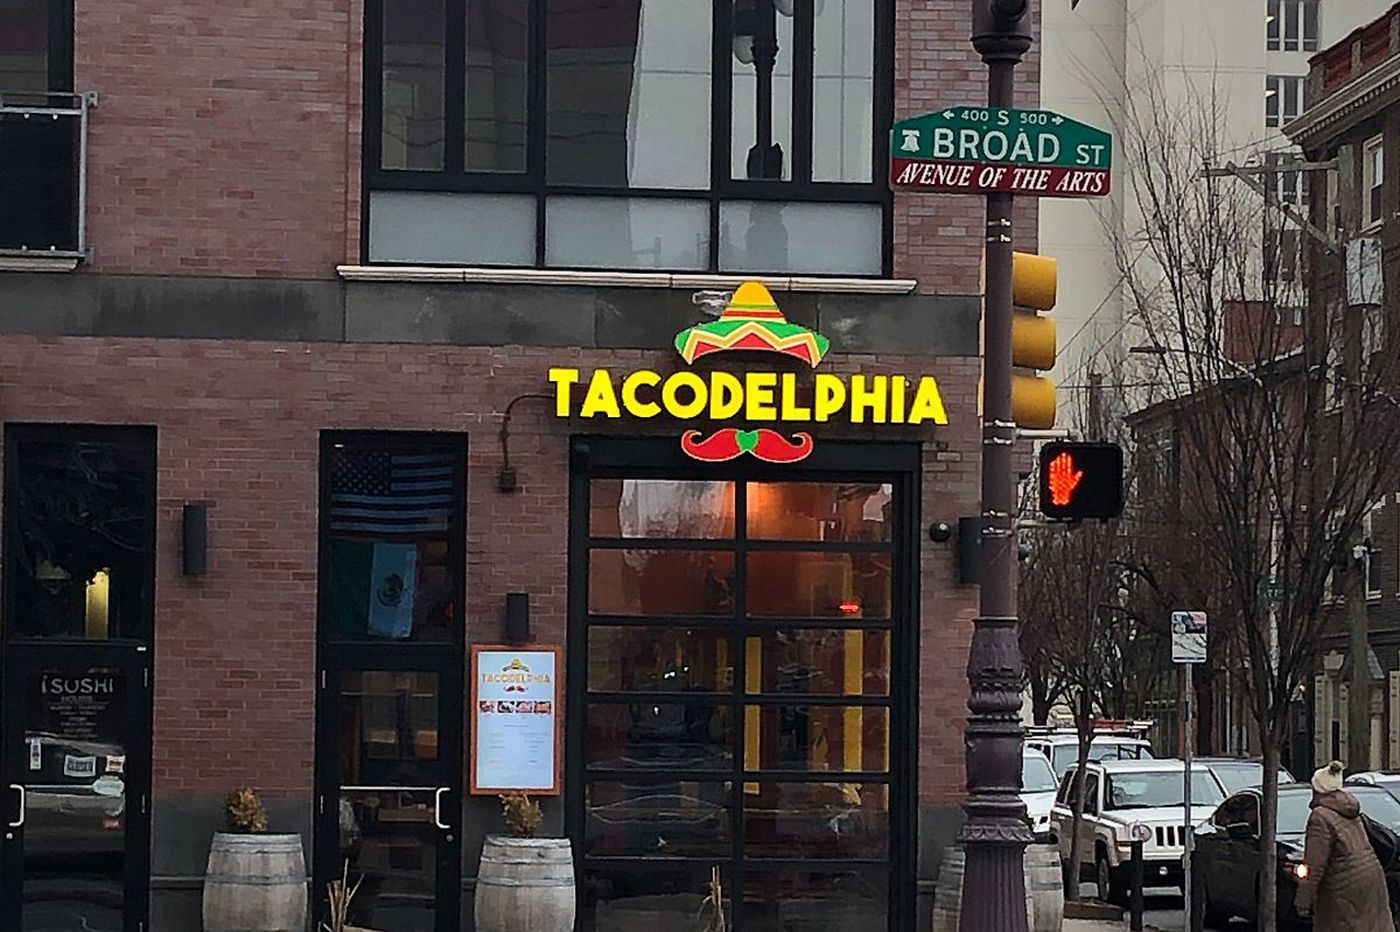 Illegal Tacos changes its name to Tacodelphia